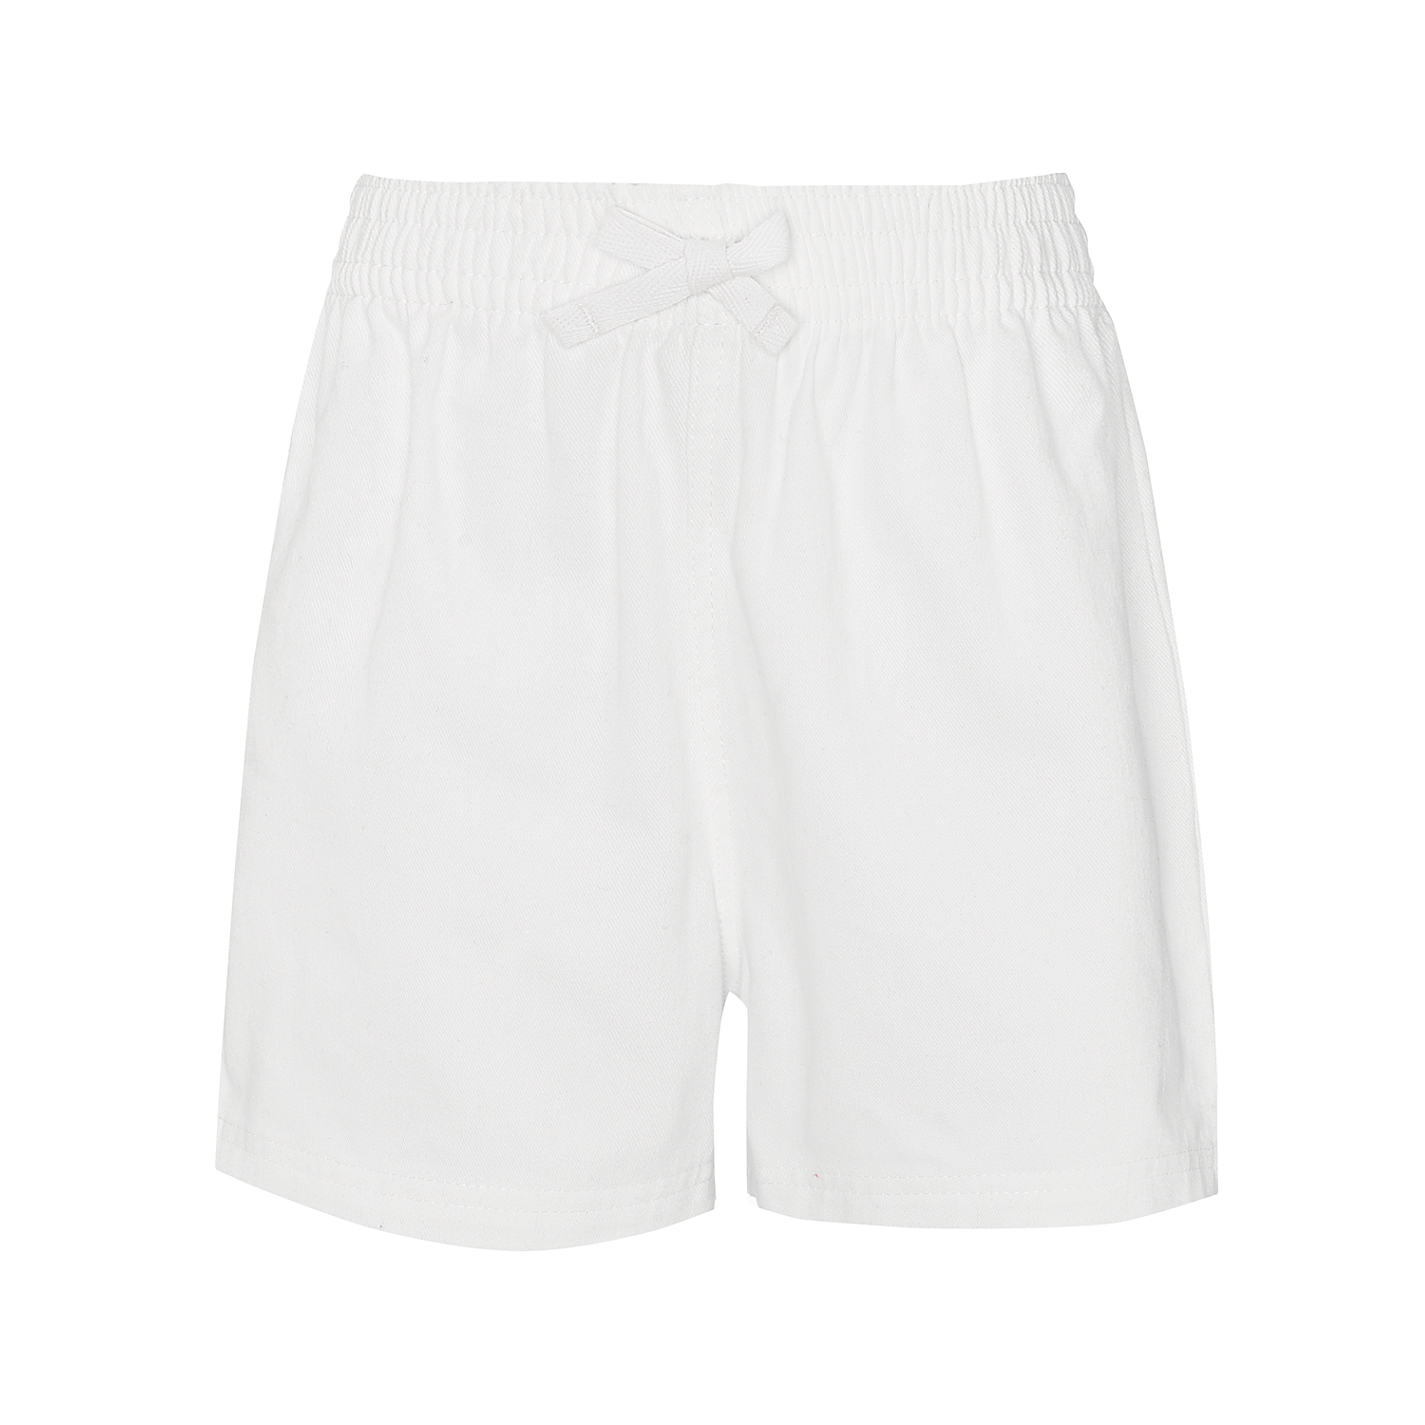 White Cotton Shorts - The Else